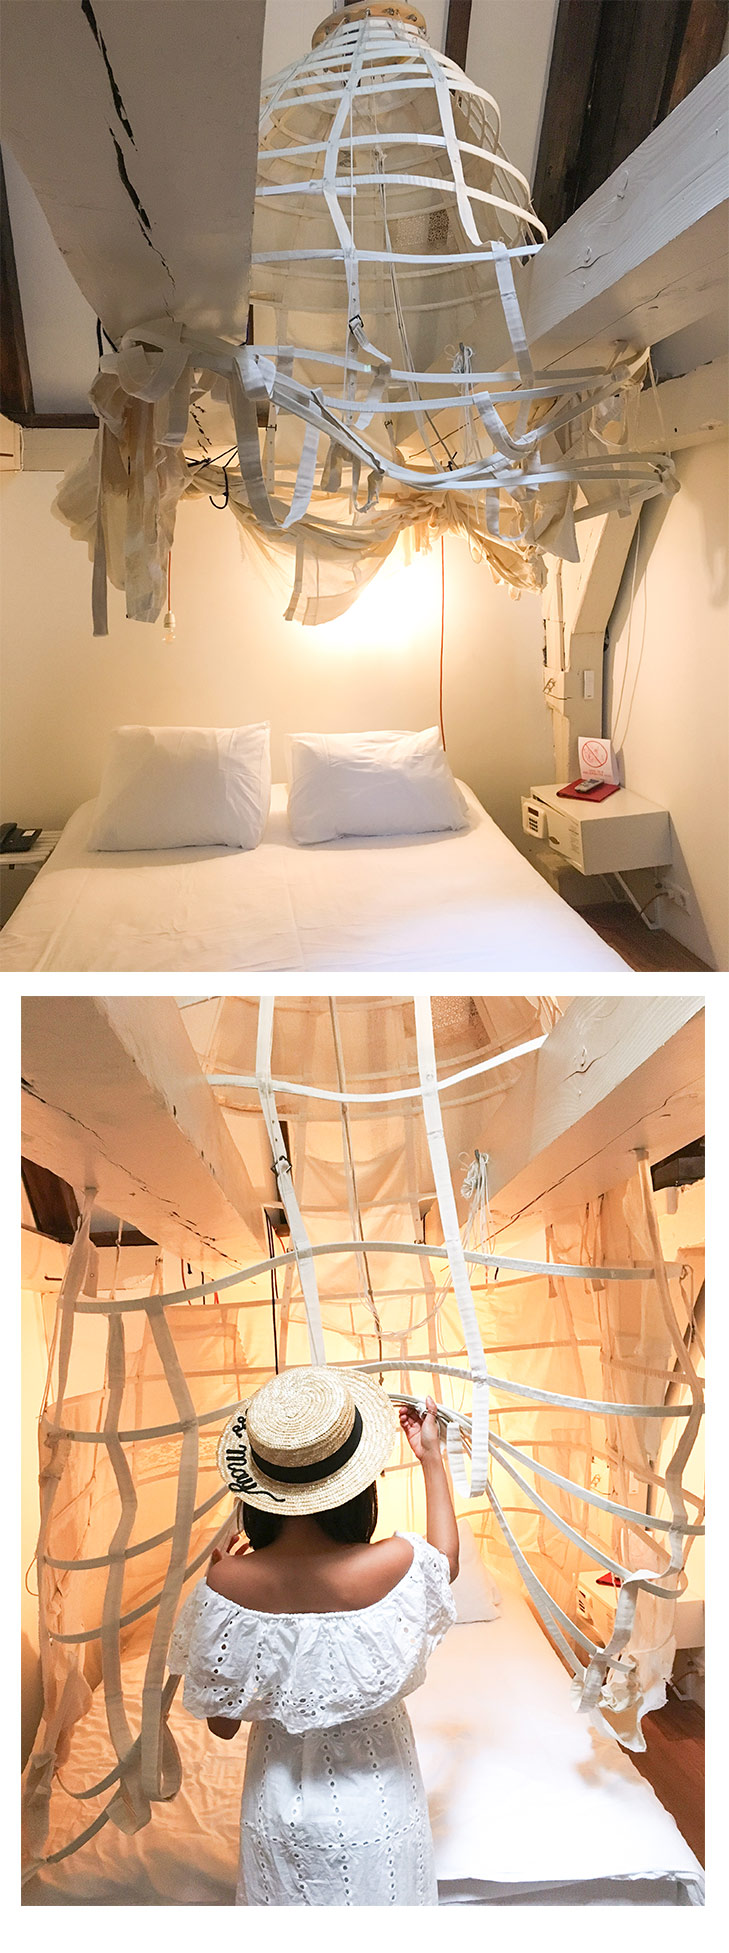 Beautiful, yet unusual rooms at Hotel The Exchange.